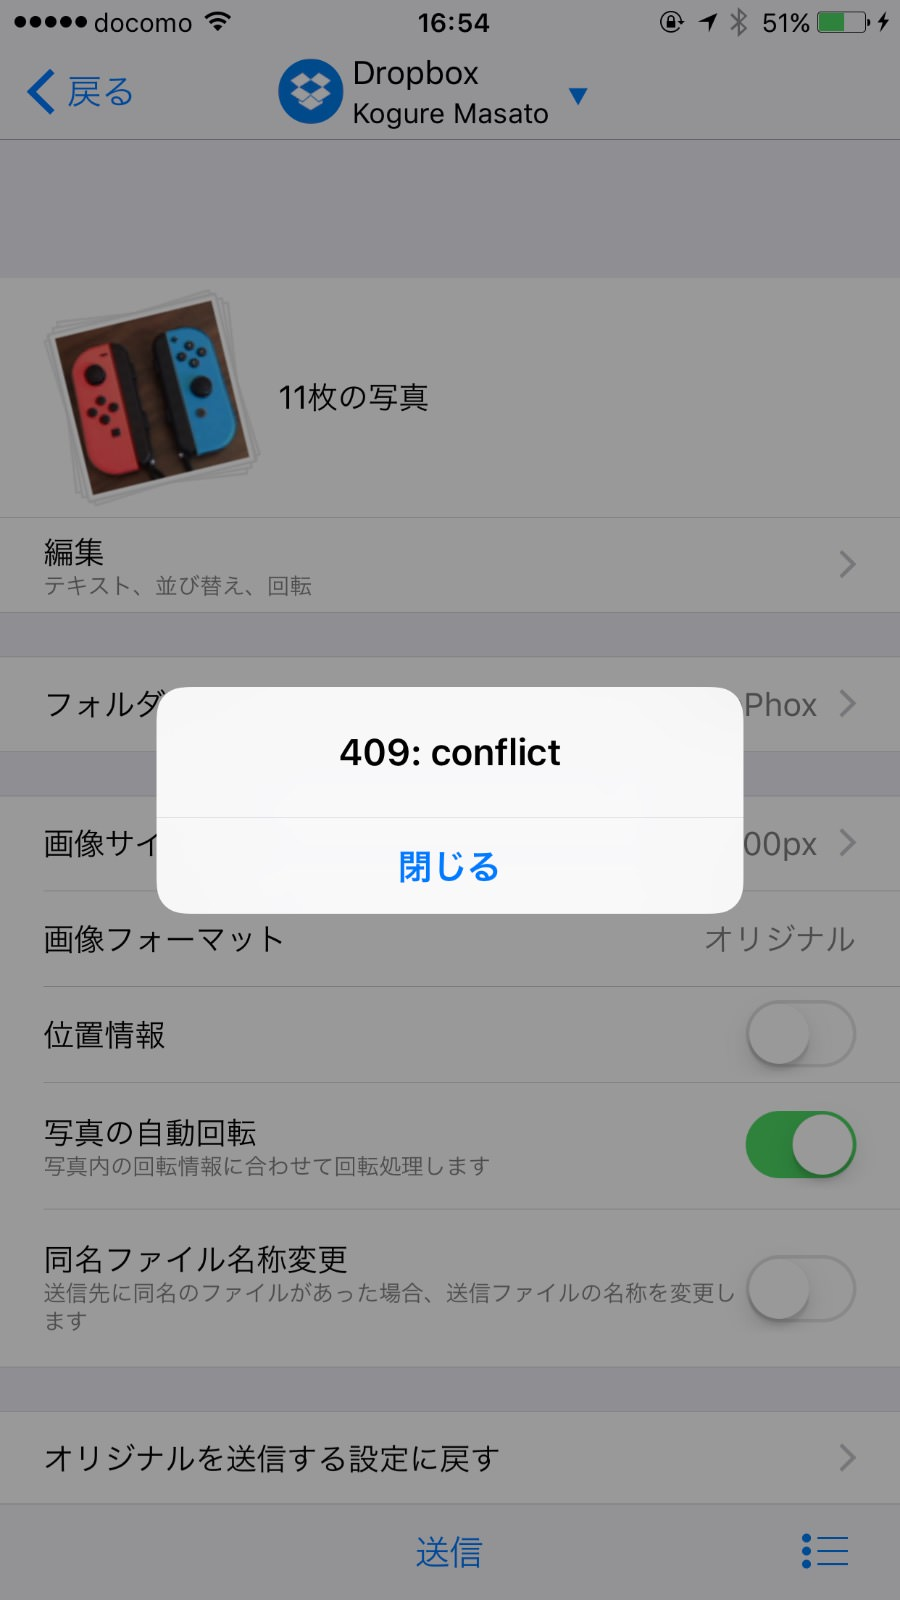 409 conflict 0304165432